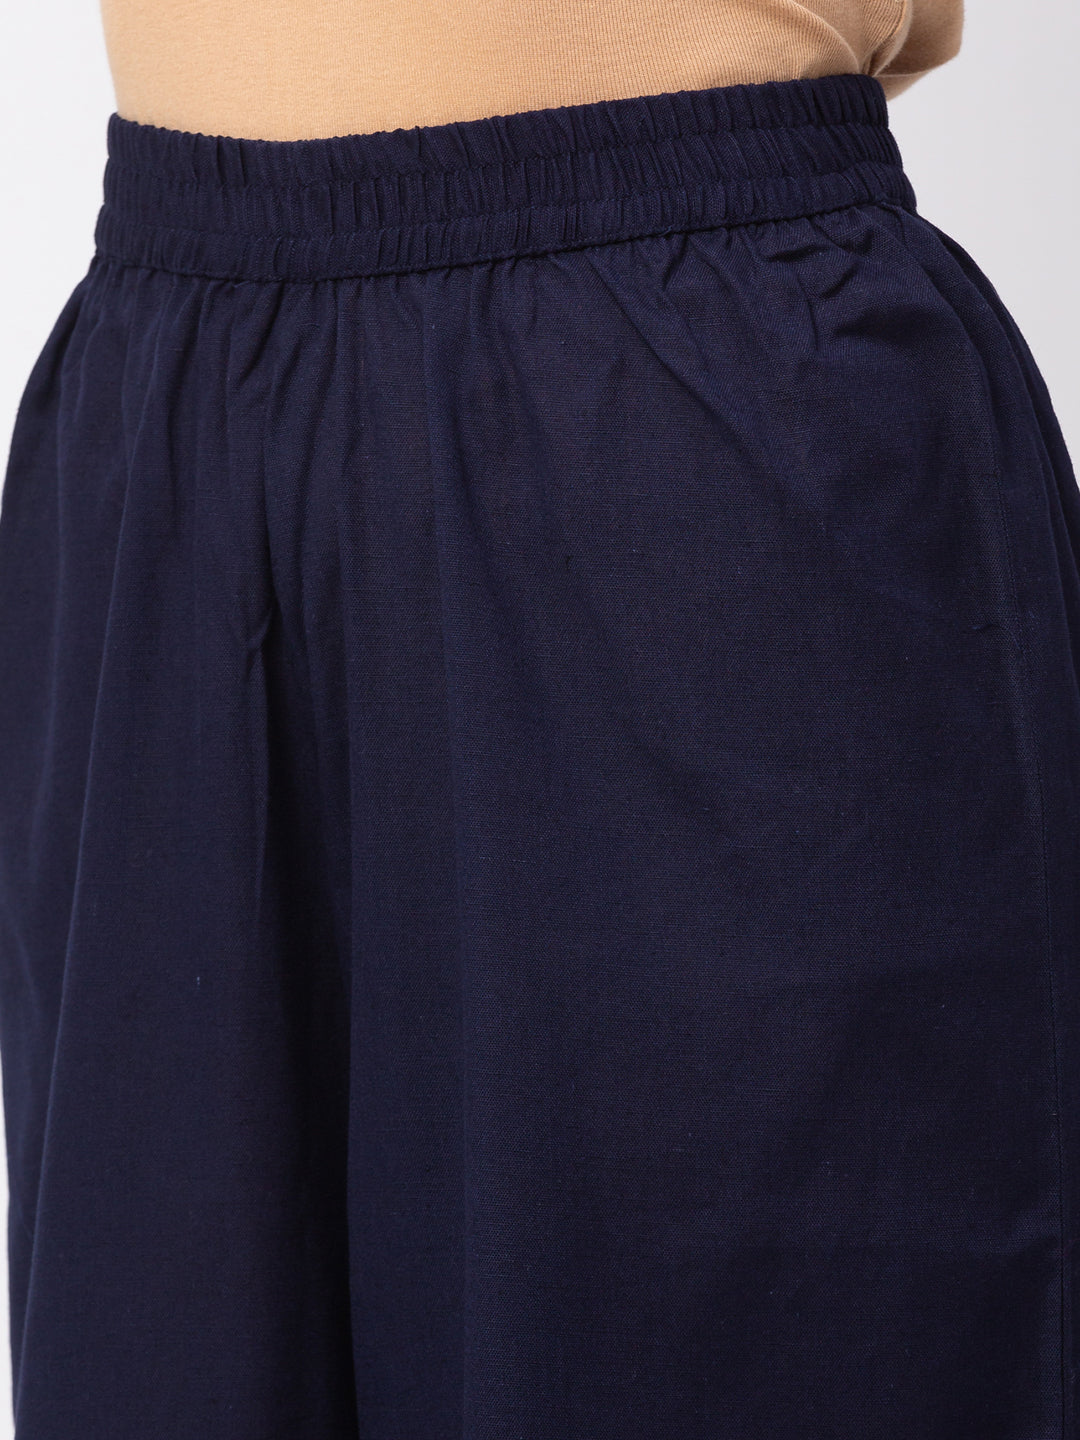 Globus Navy Solid Trousers-5